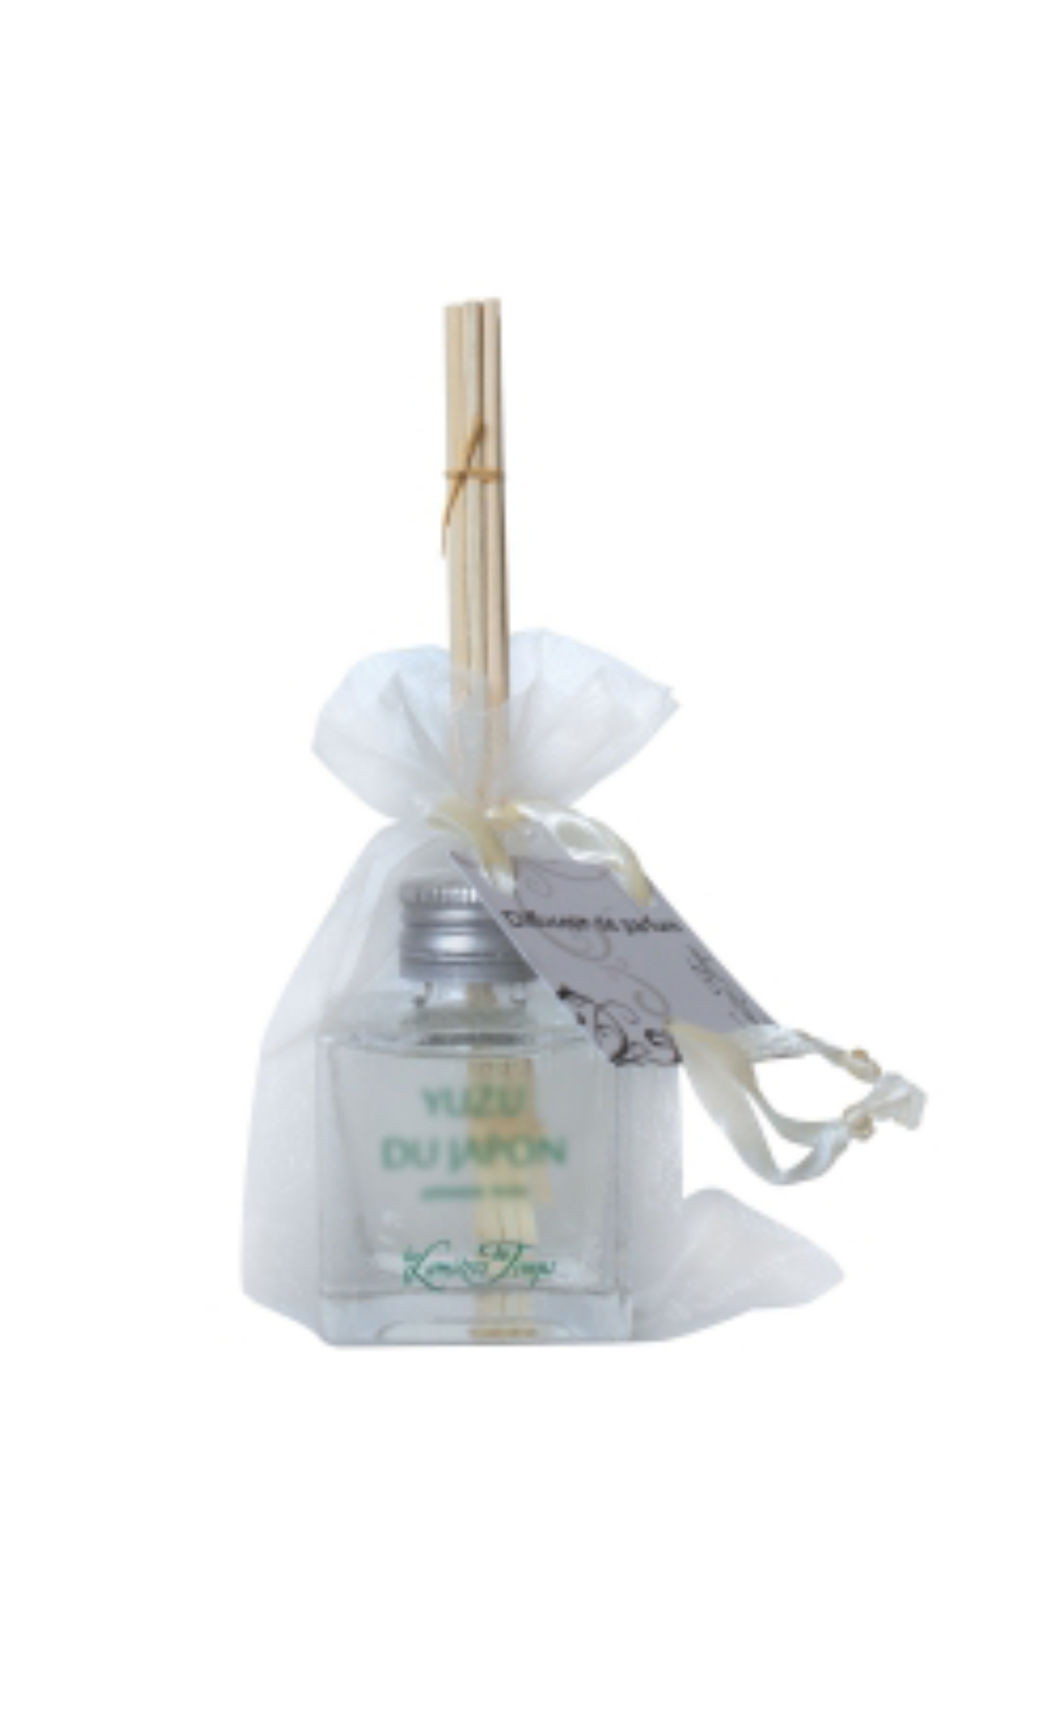 Bamboo and Rainforest Scented Reed Diffuser by Les Lumieres du Temps - Shop Aromatic Reed Diffusers Online